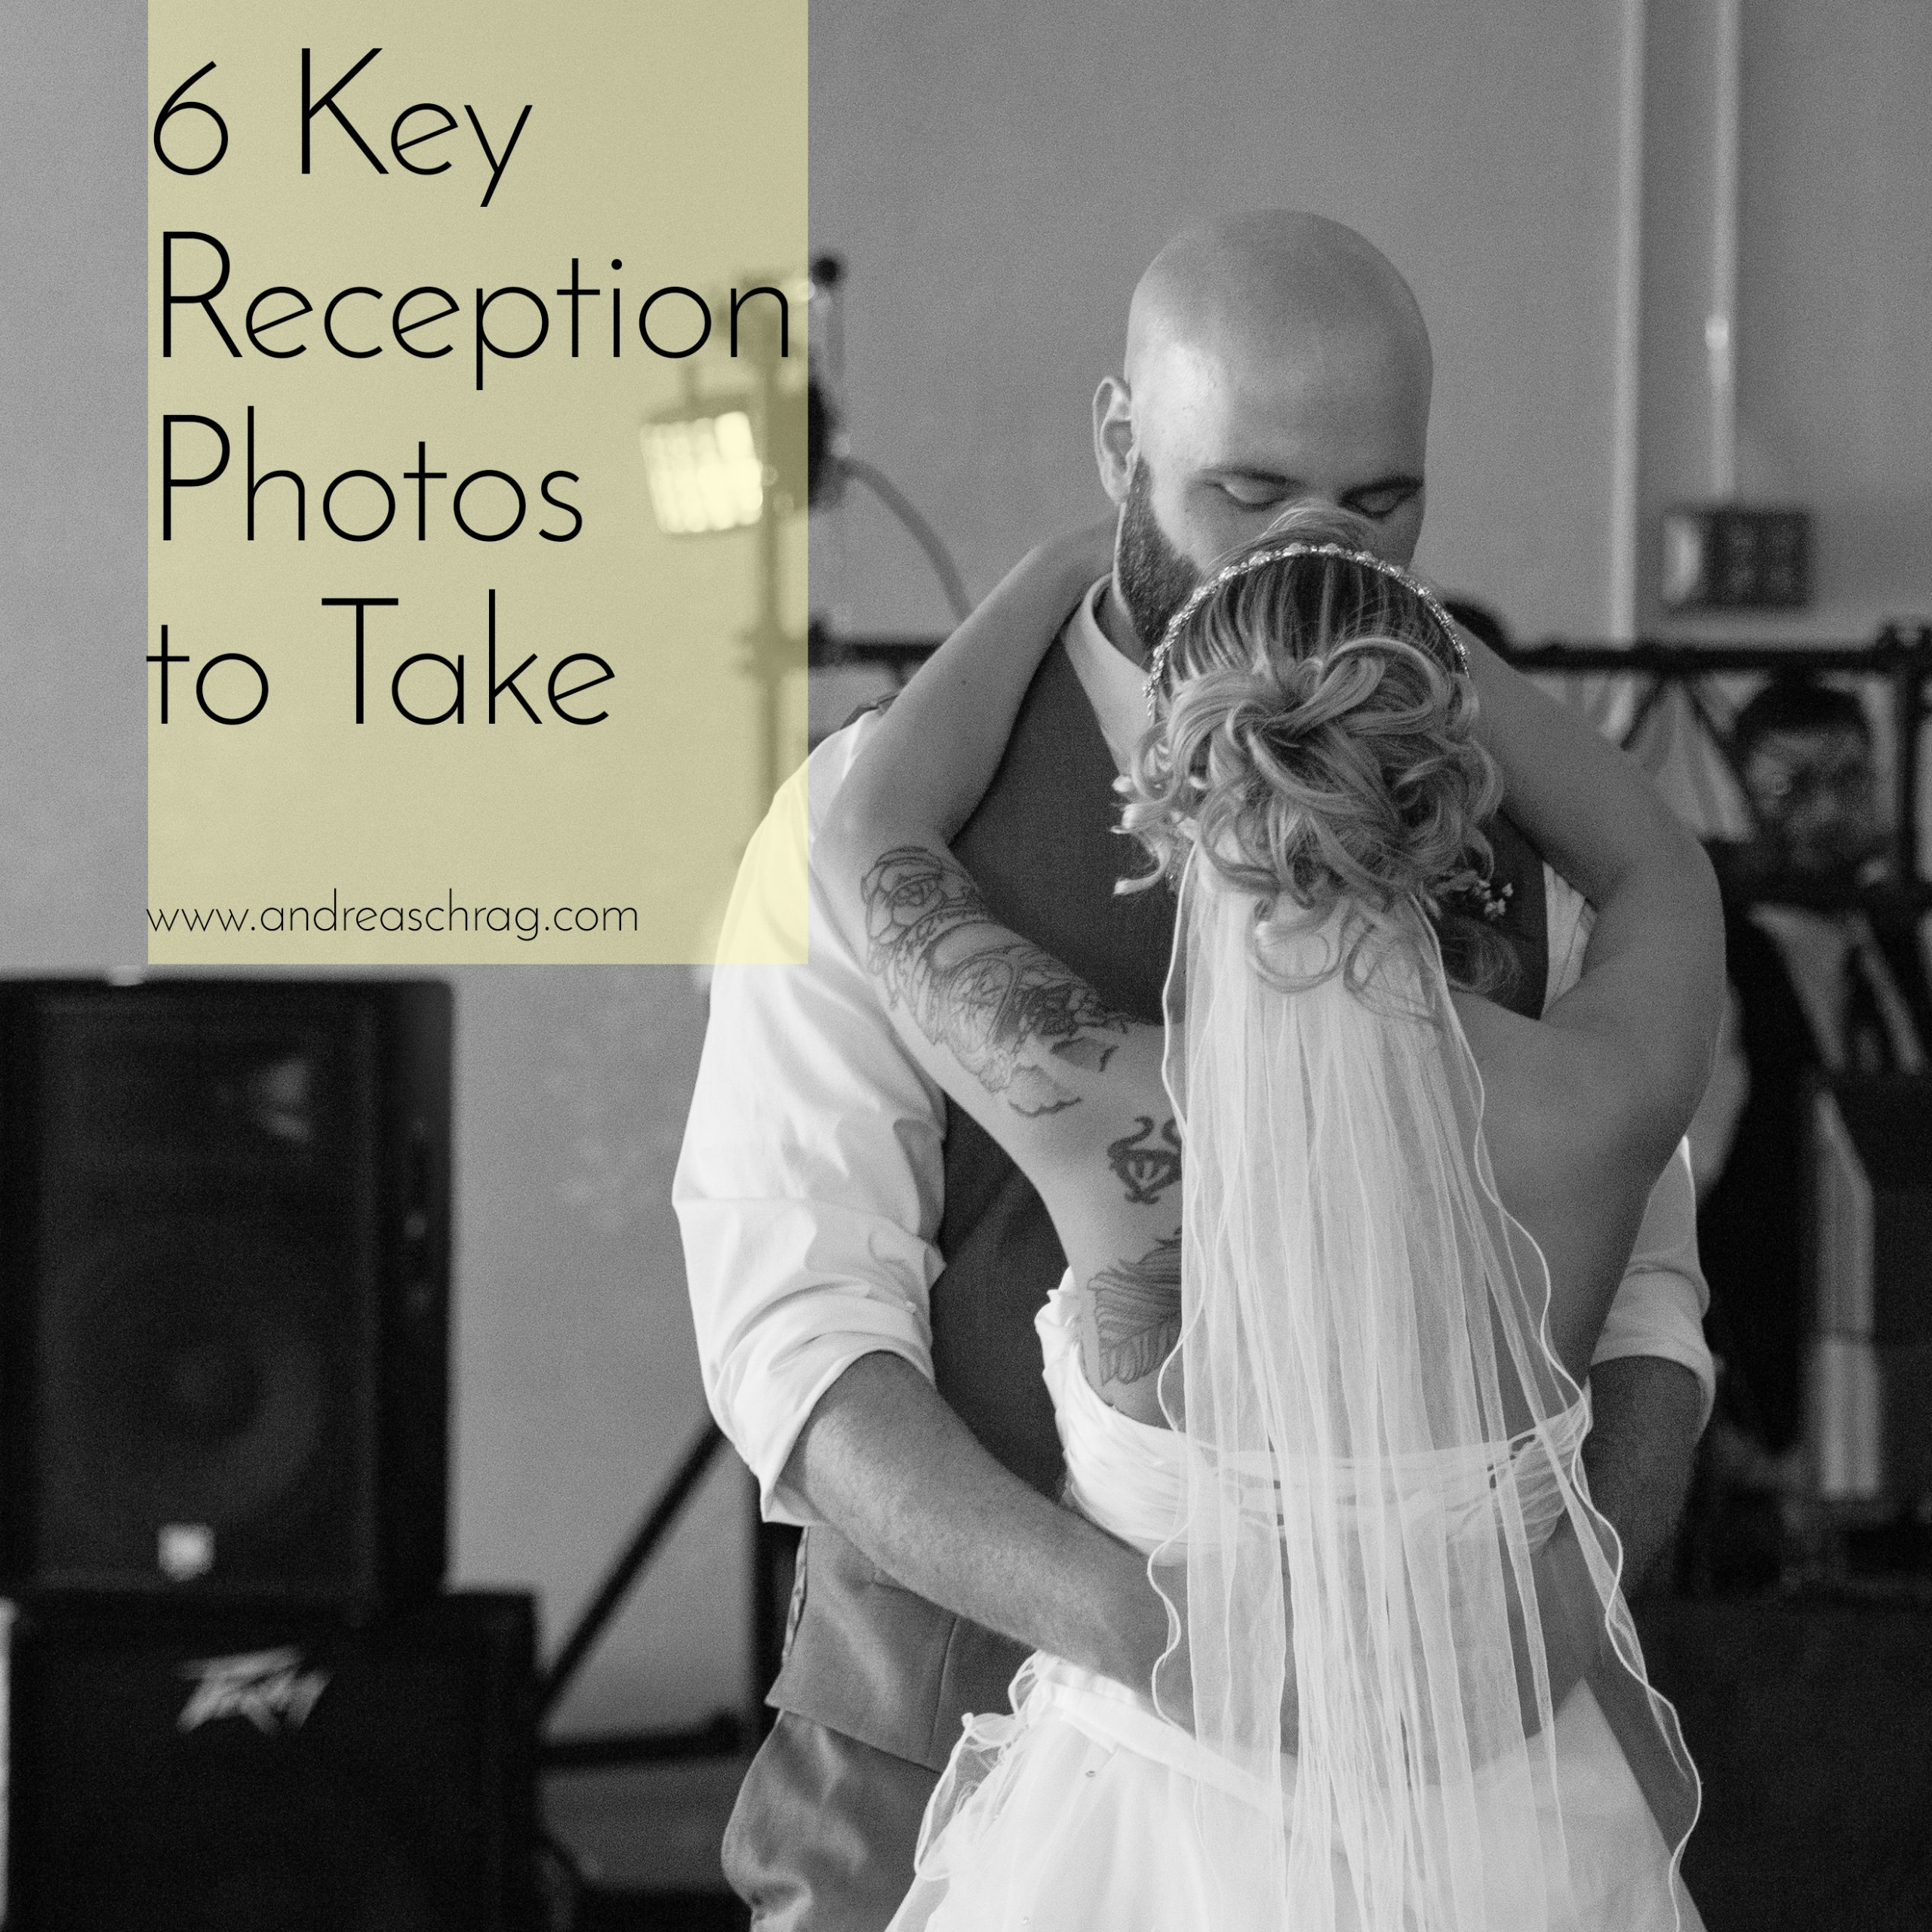 6 key reception photos to take